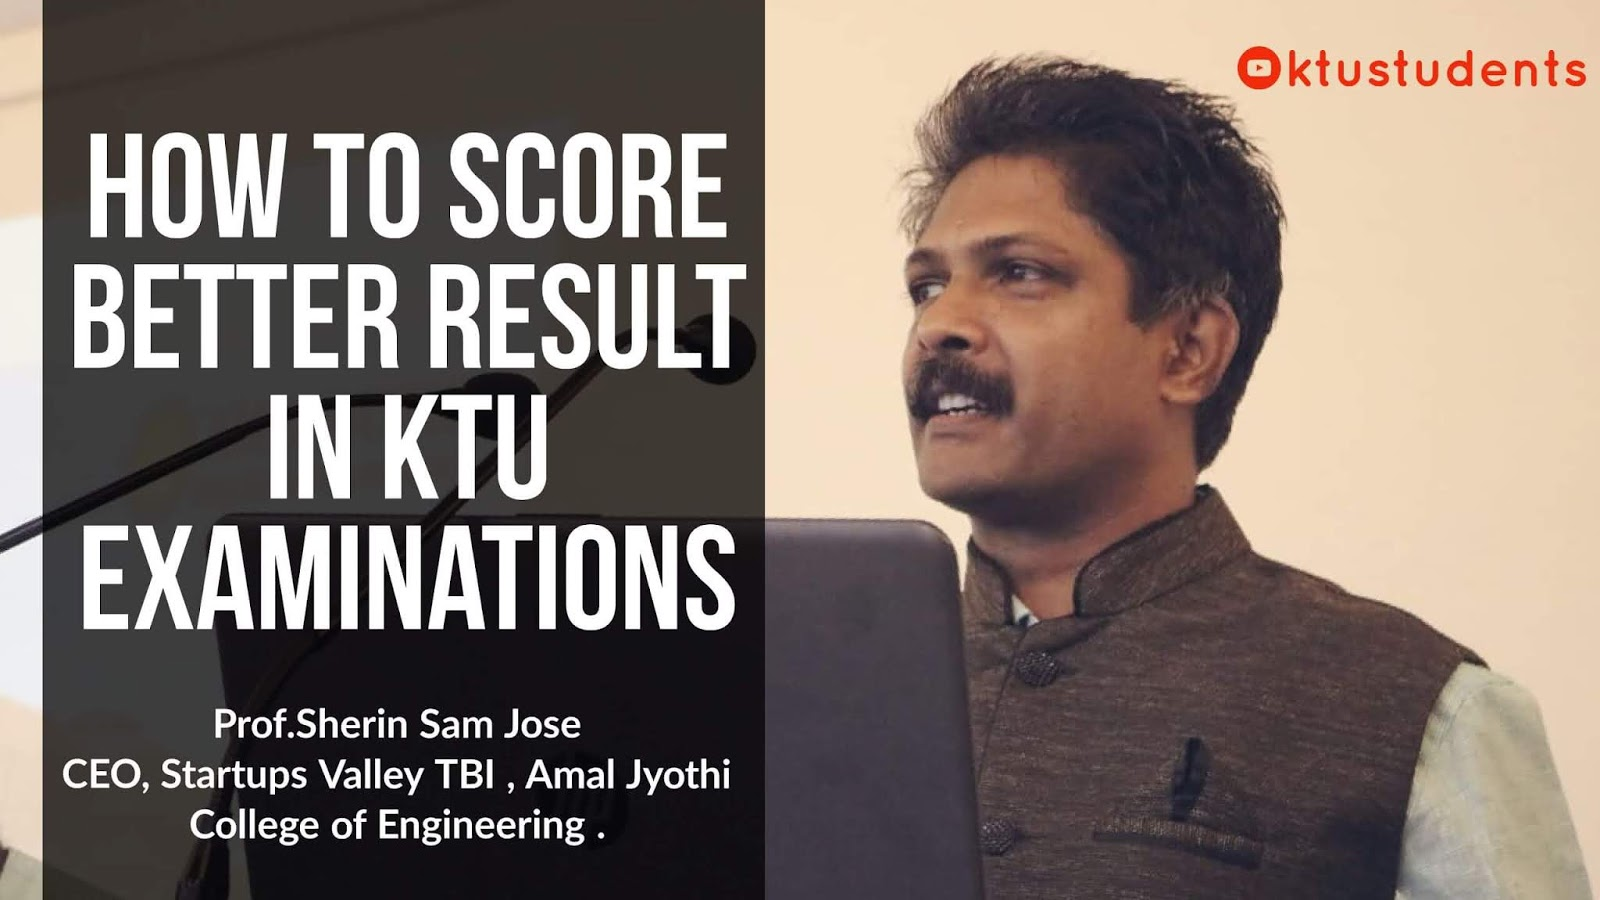 Score Better in KTU Engineering Examinations - Series Test and Final - Prof Sherin Sam Jos